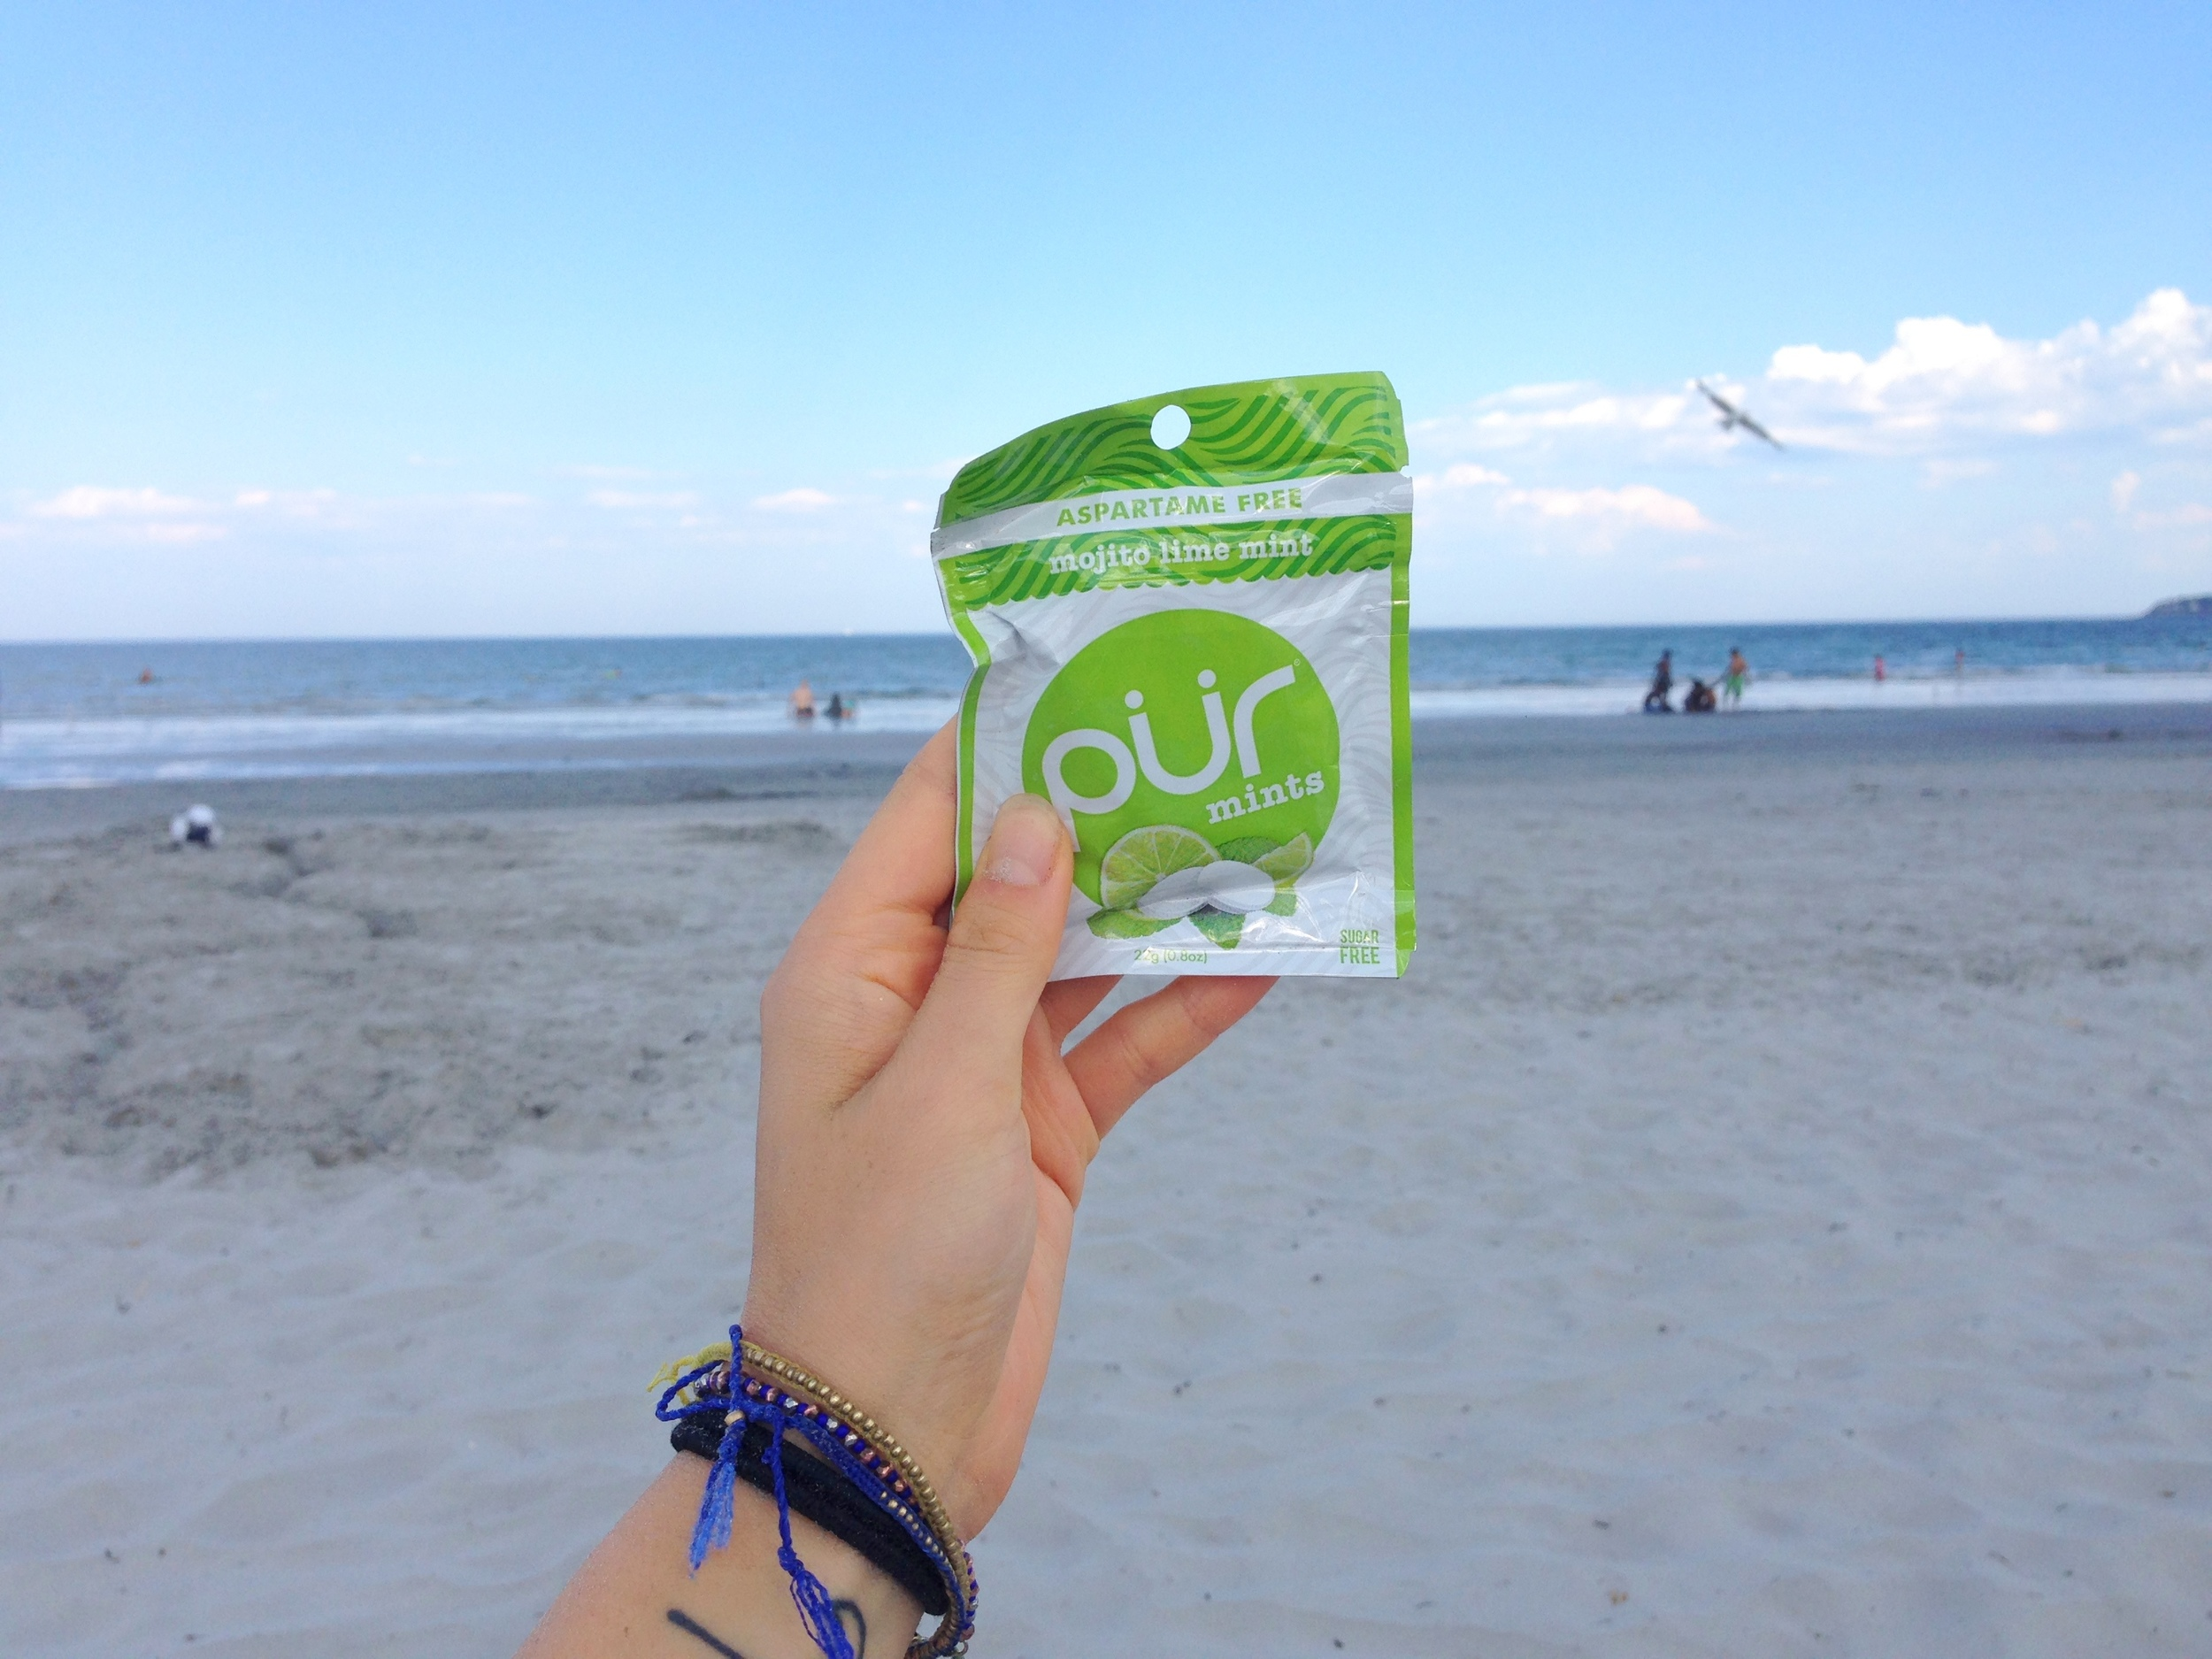 mojito lime mint at the beach